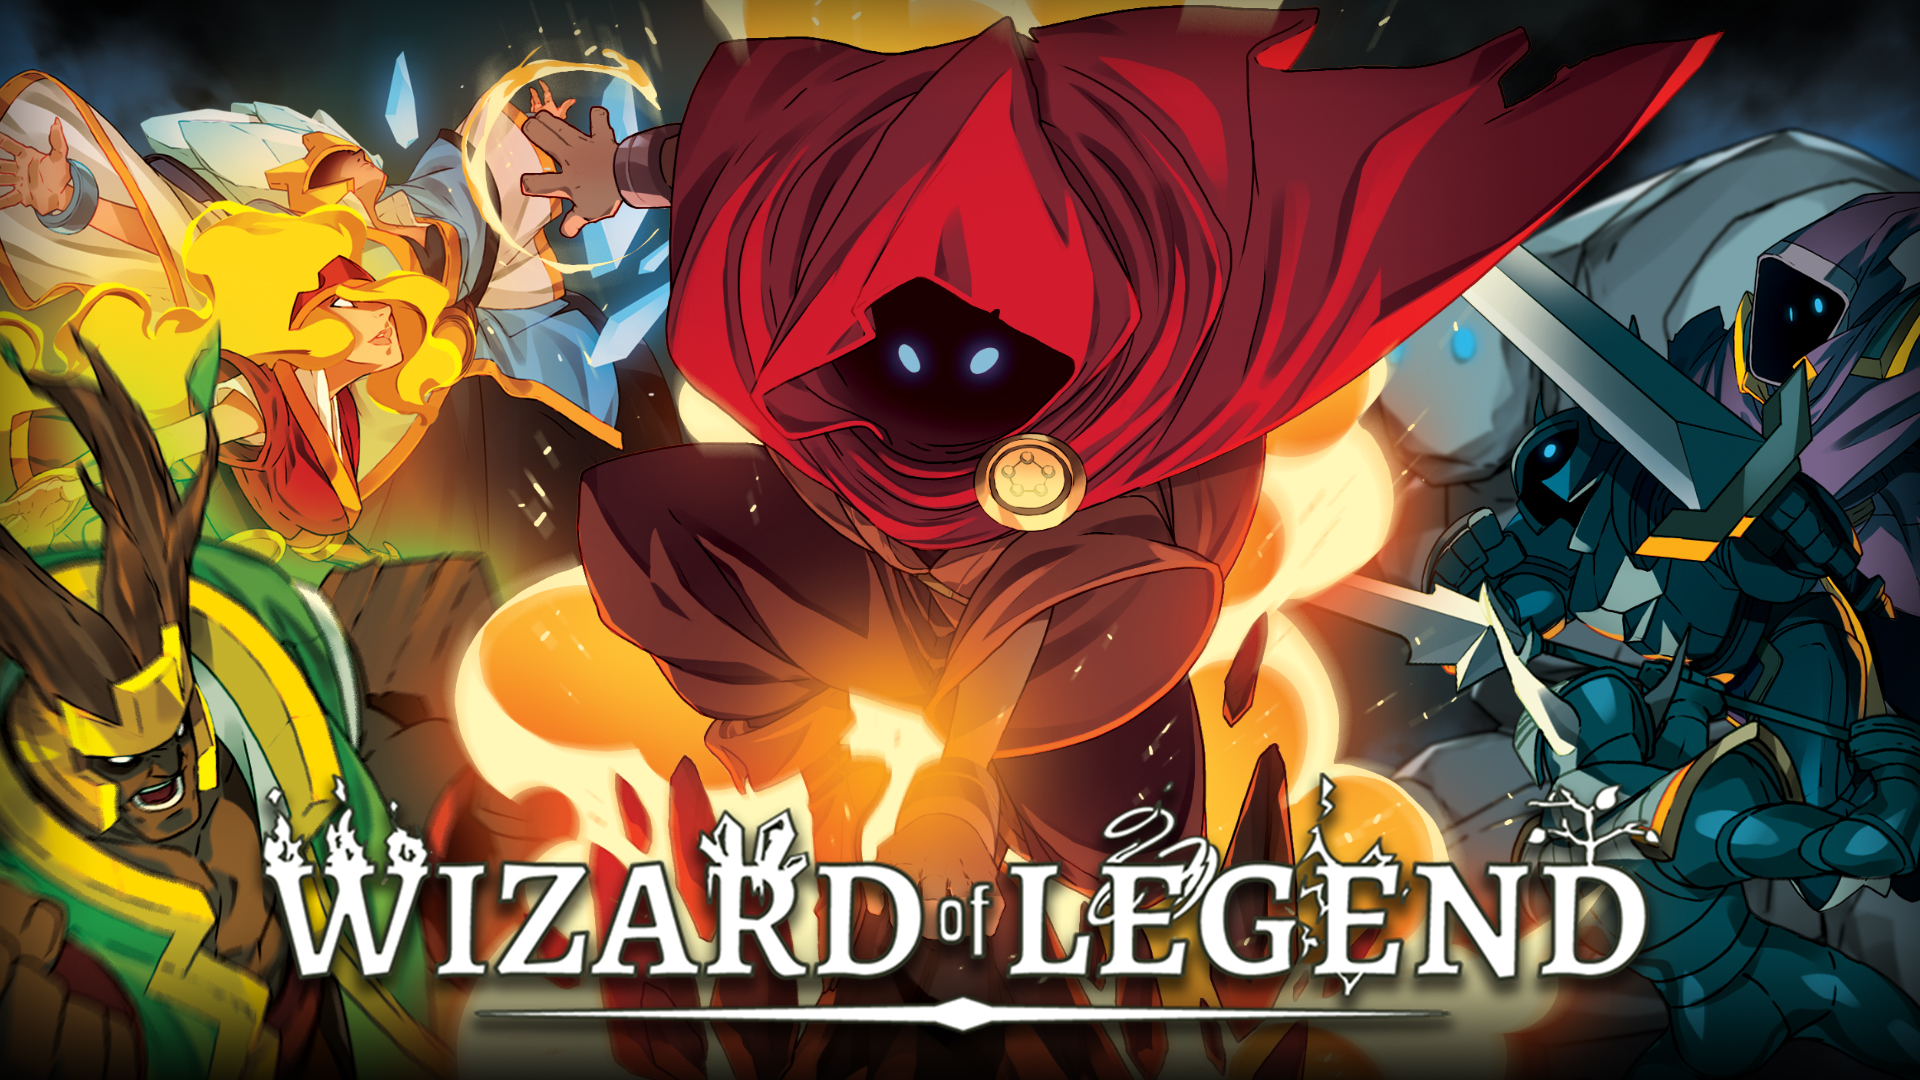 Wizard of Legend 日本語攻略 Wiki